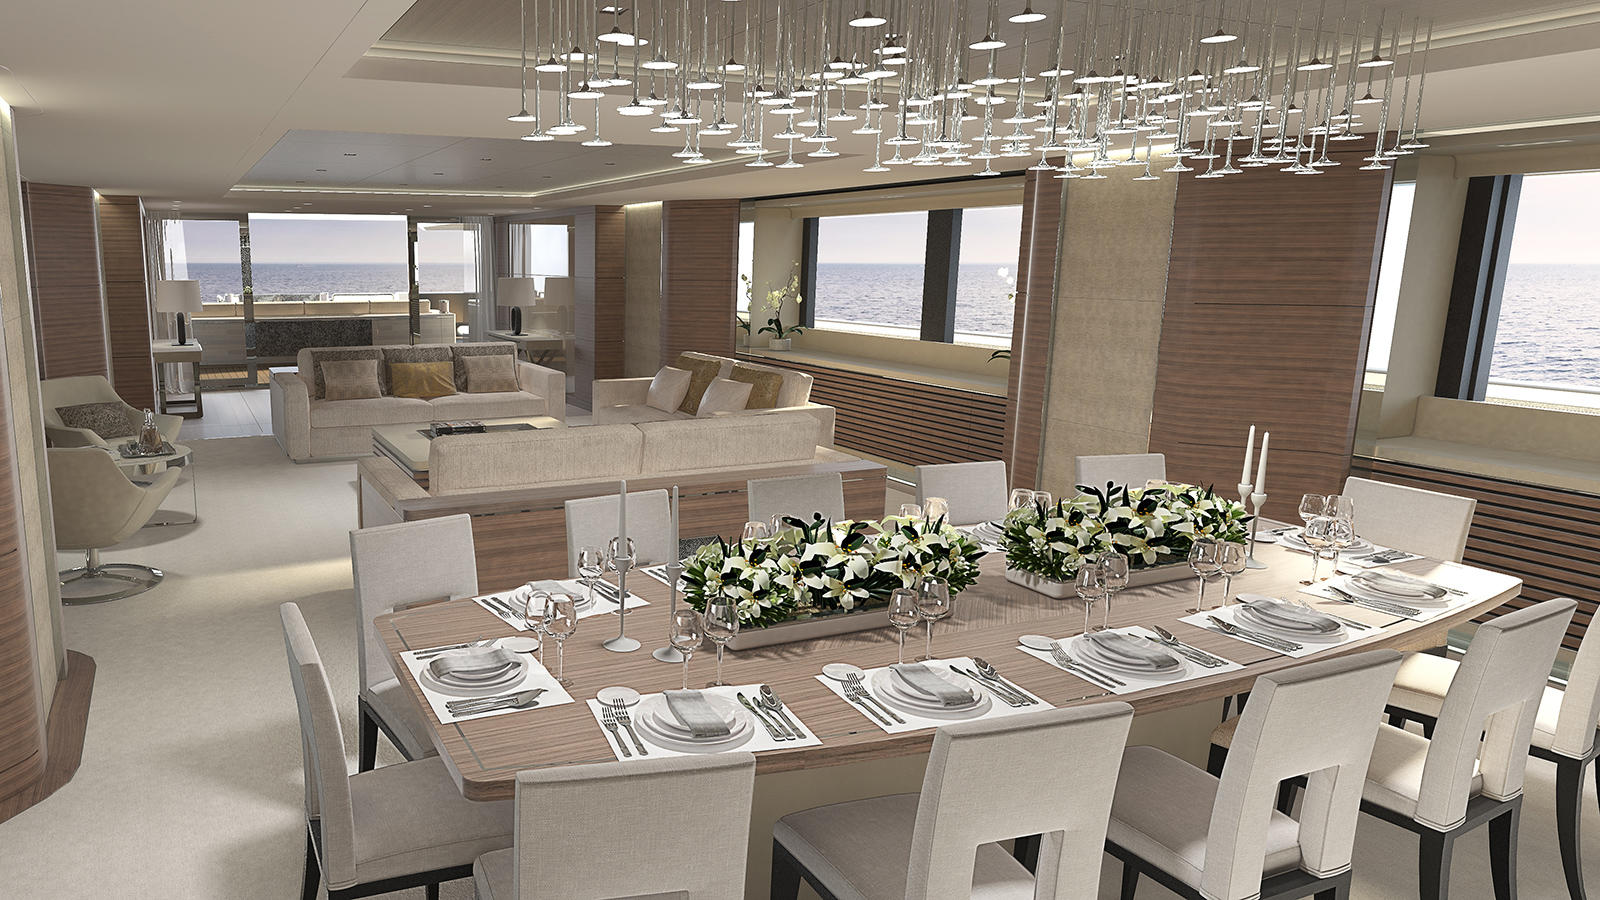 Darnet Design Reveals First Interior Renderings of 64m VSY